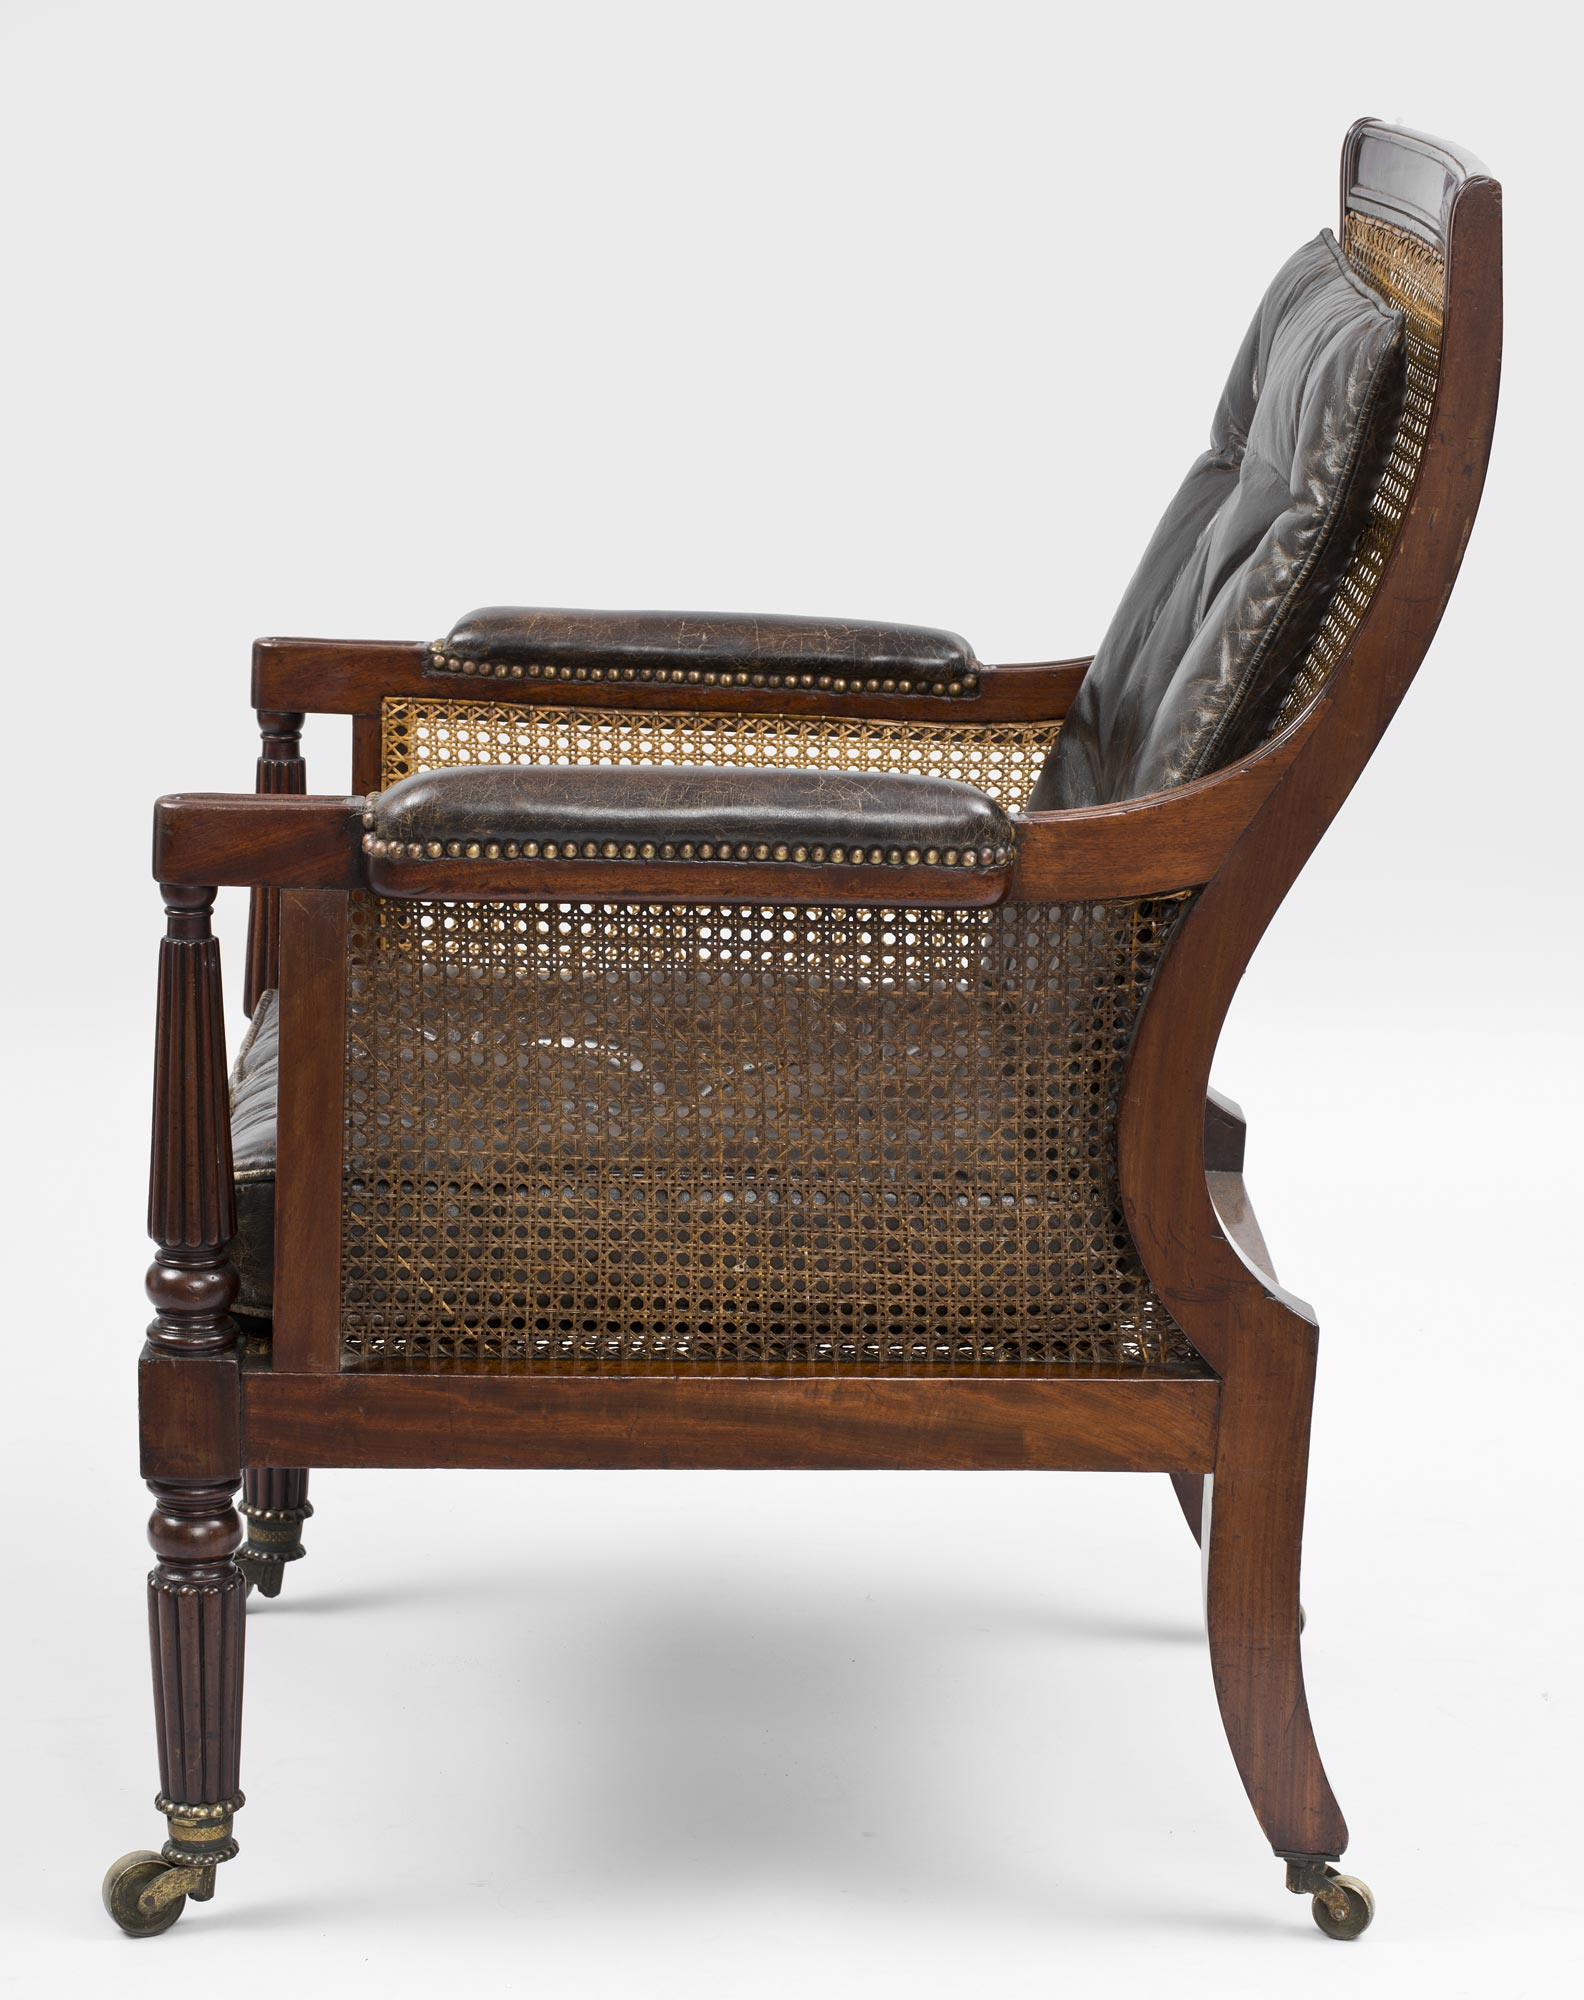 ... Antique English Regency Caned Library Armchair ... - Antique Armchairs English Regency Mahogany Library Caned Armchair